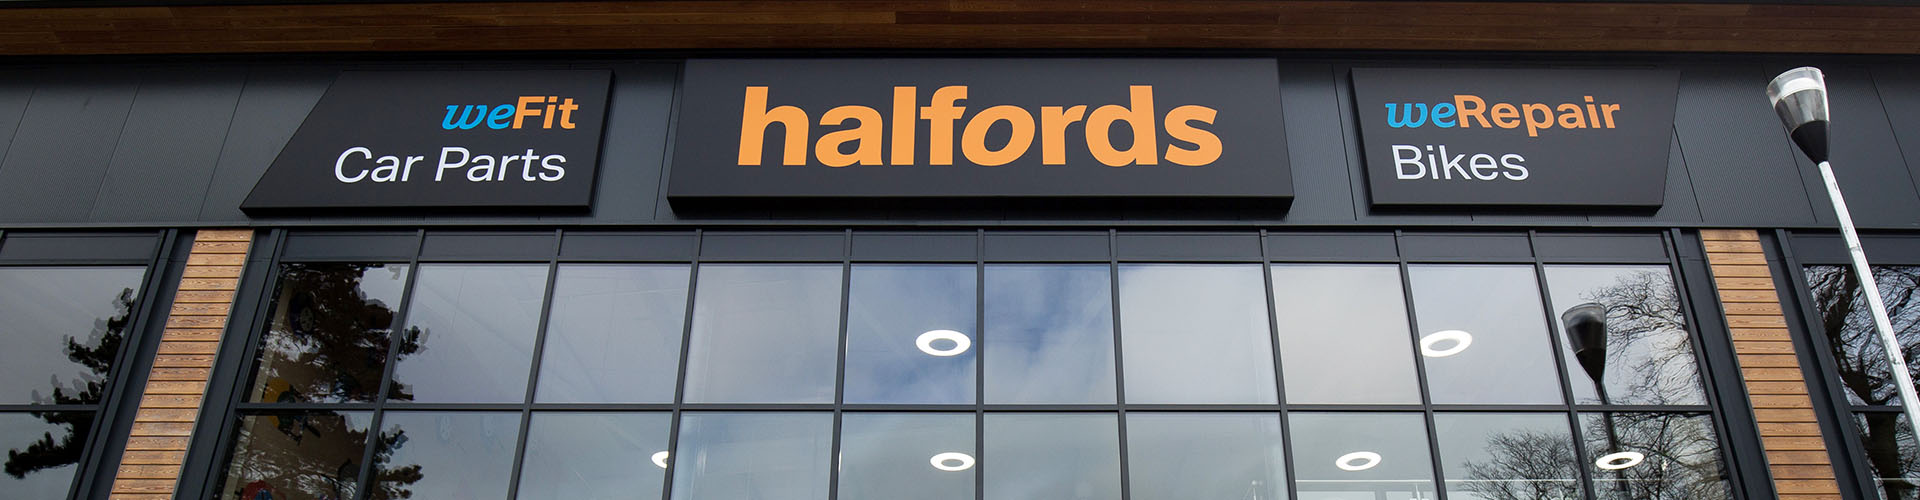 halfords-store-front.jpg